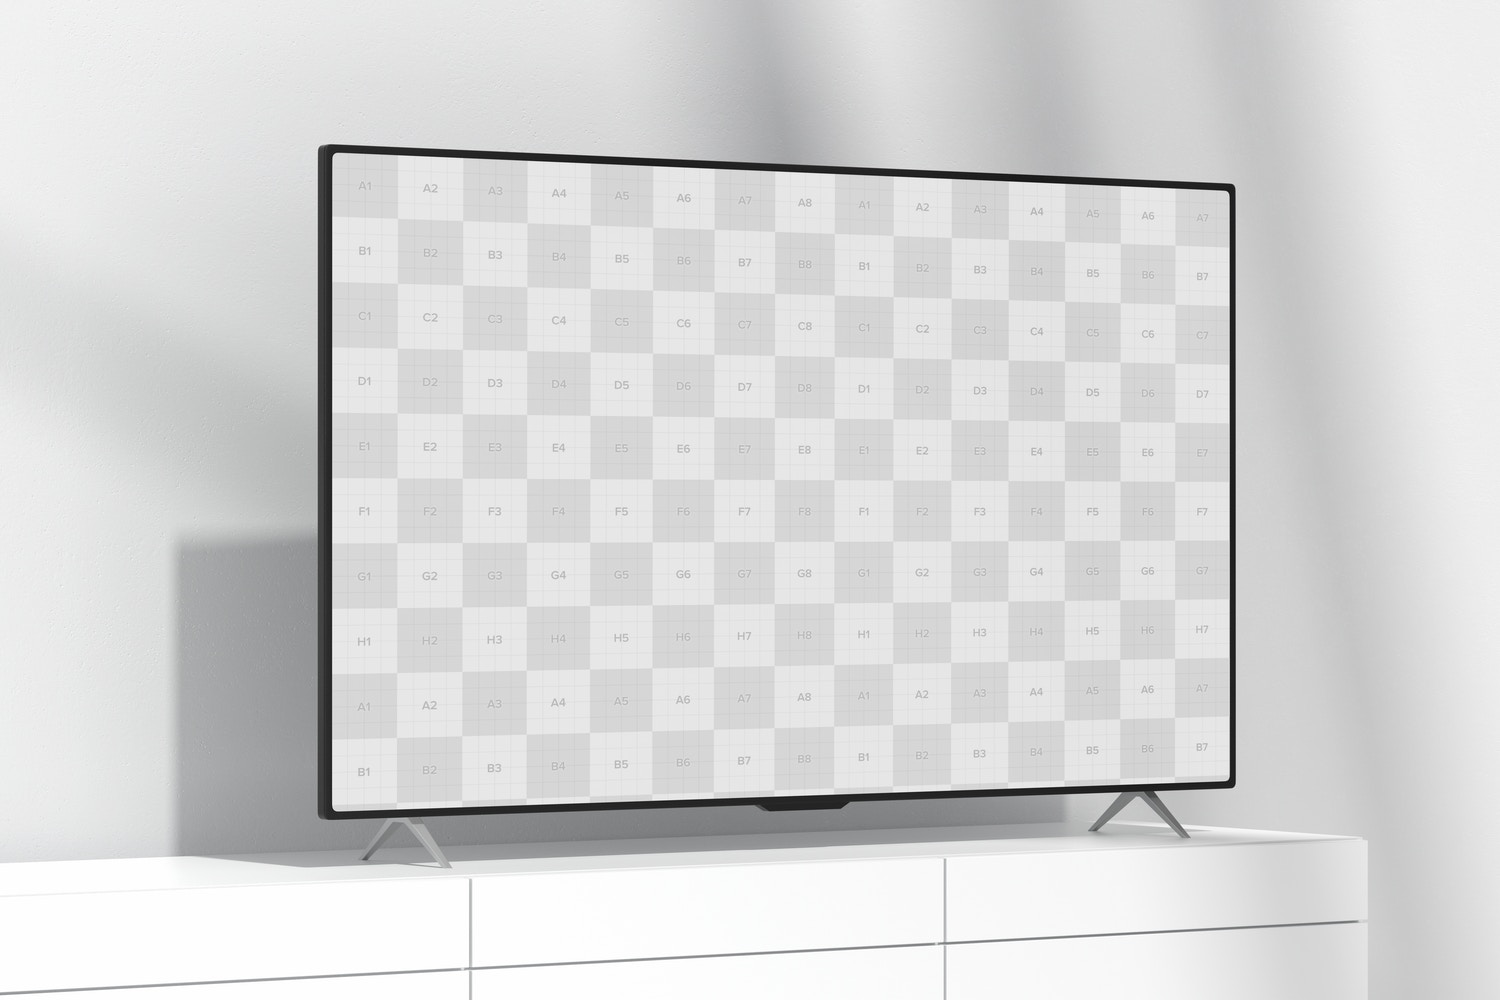 """TV 85"""" on Table Mockup, Right View"""